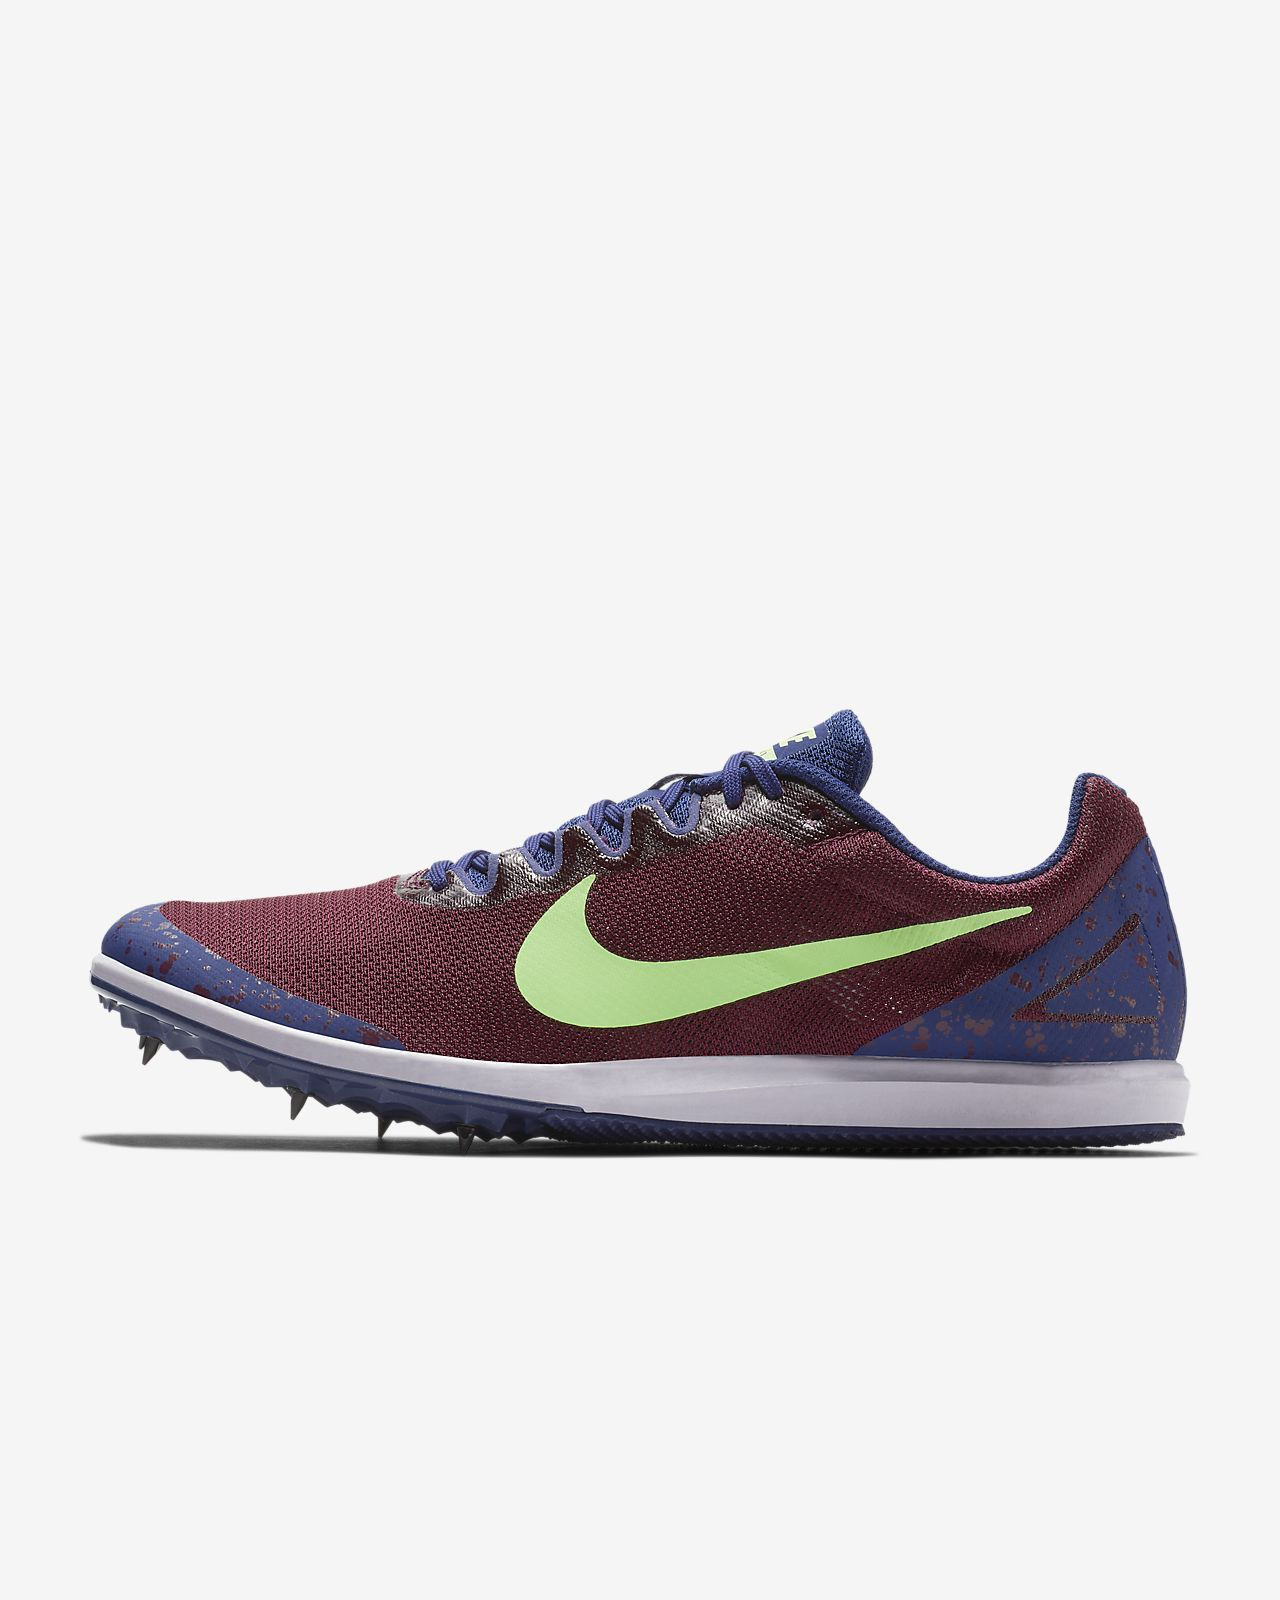 newest 86c46 df862 ... Scarpa chiodata per atletica Nike Zoom Rival D 10 - Unisex